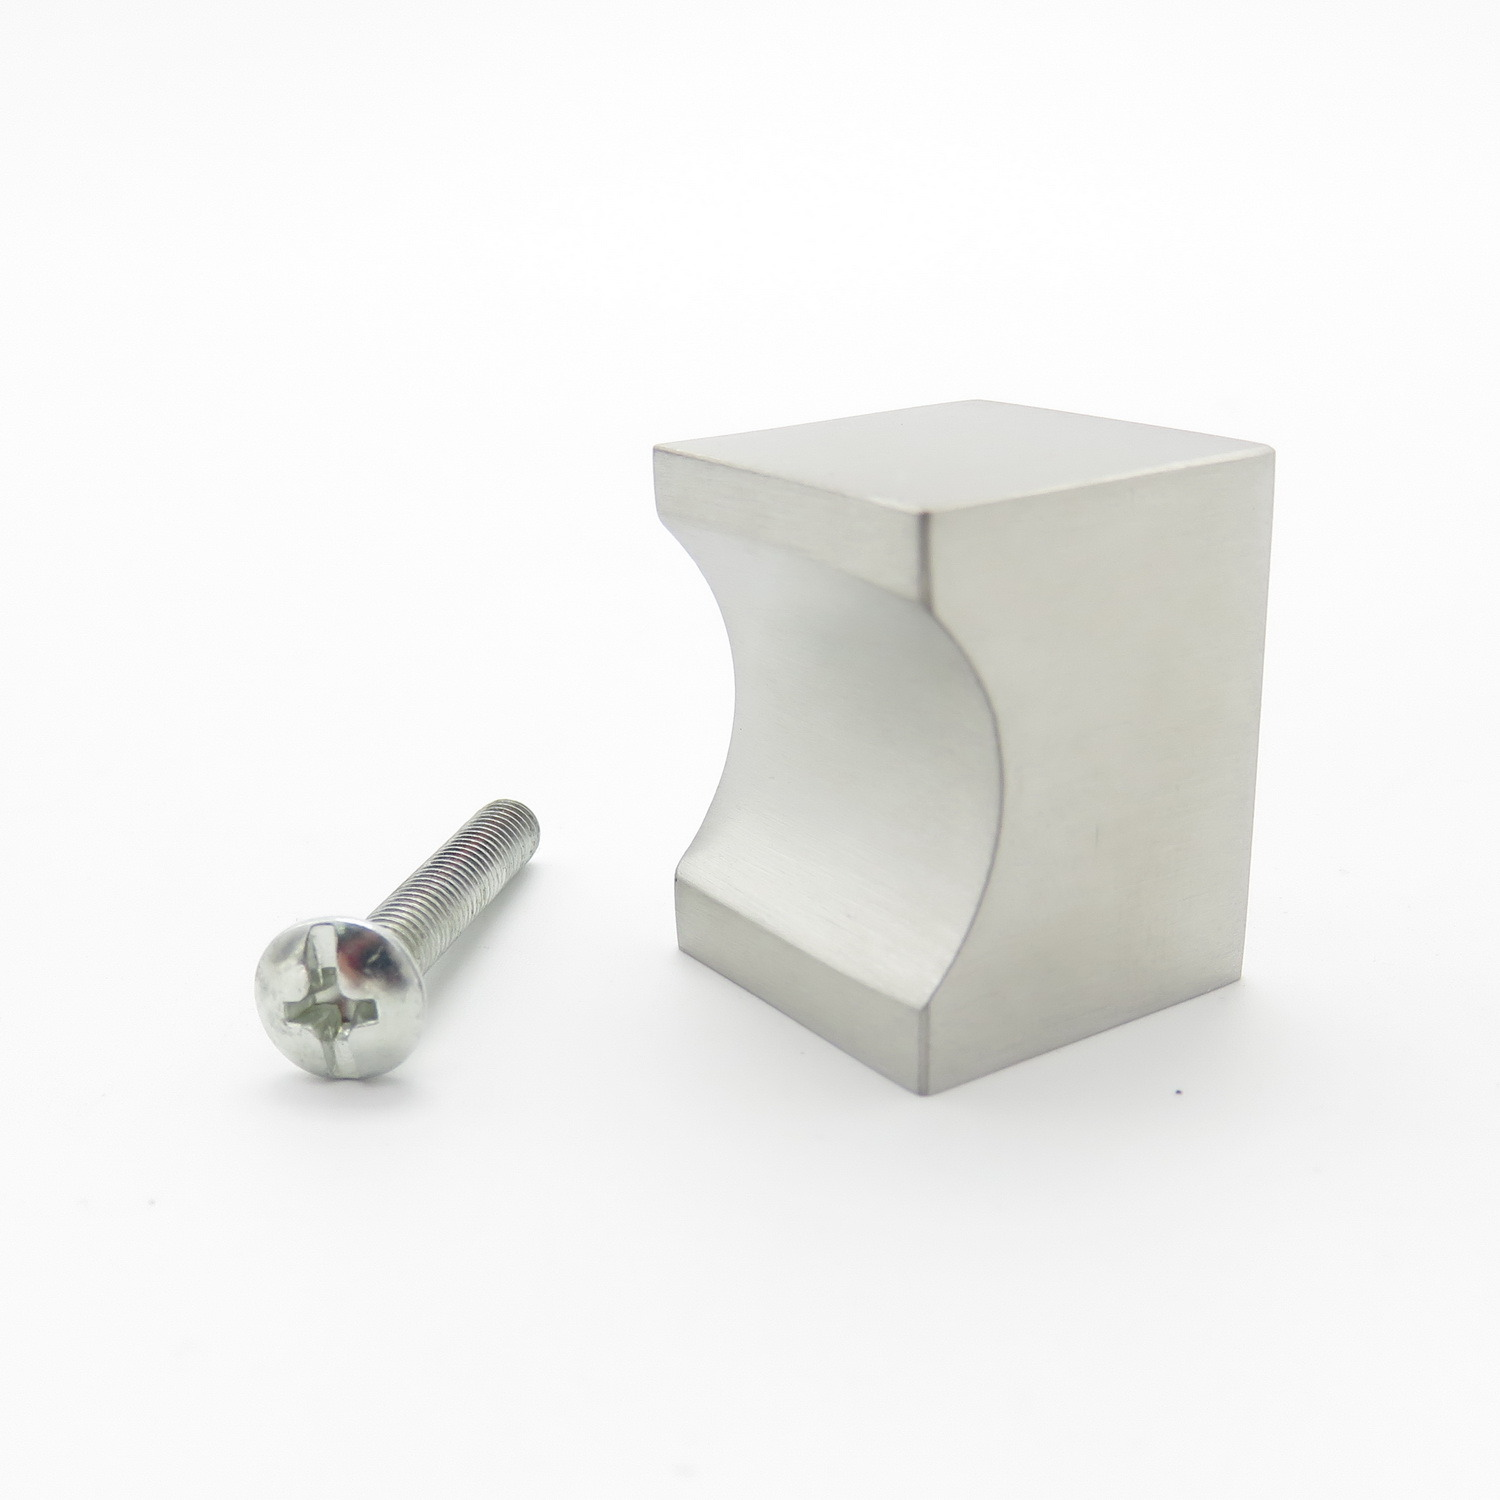 multifunctional furniture. Multifunctional Furniture Hardware Door Knob With High Quality